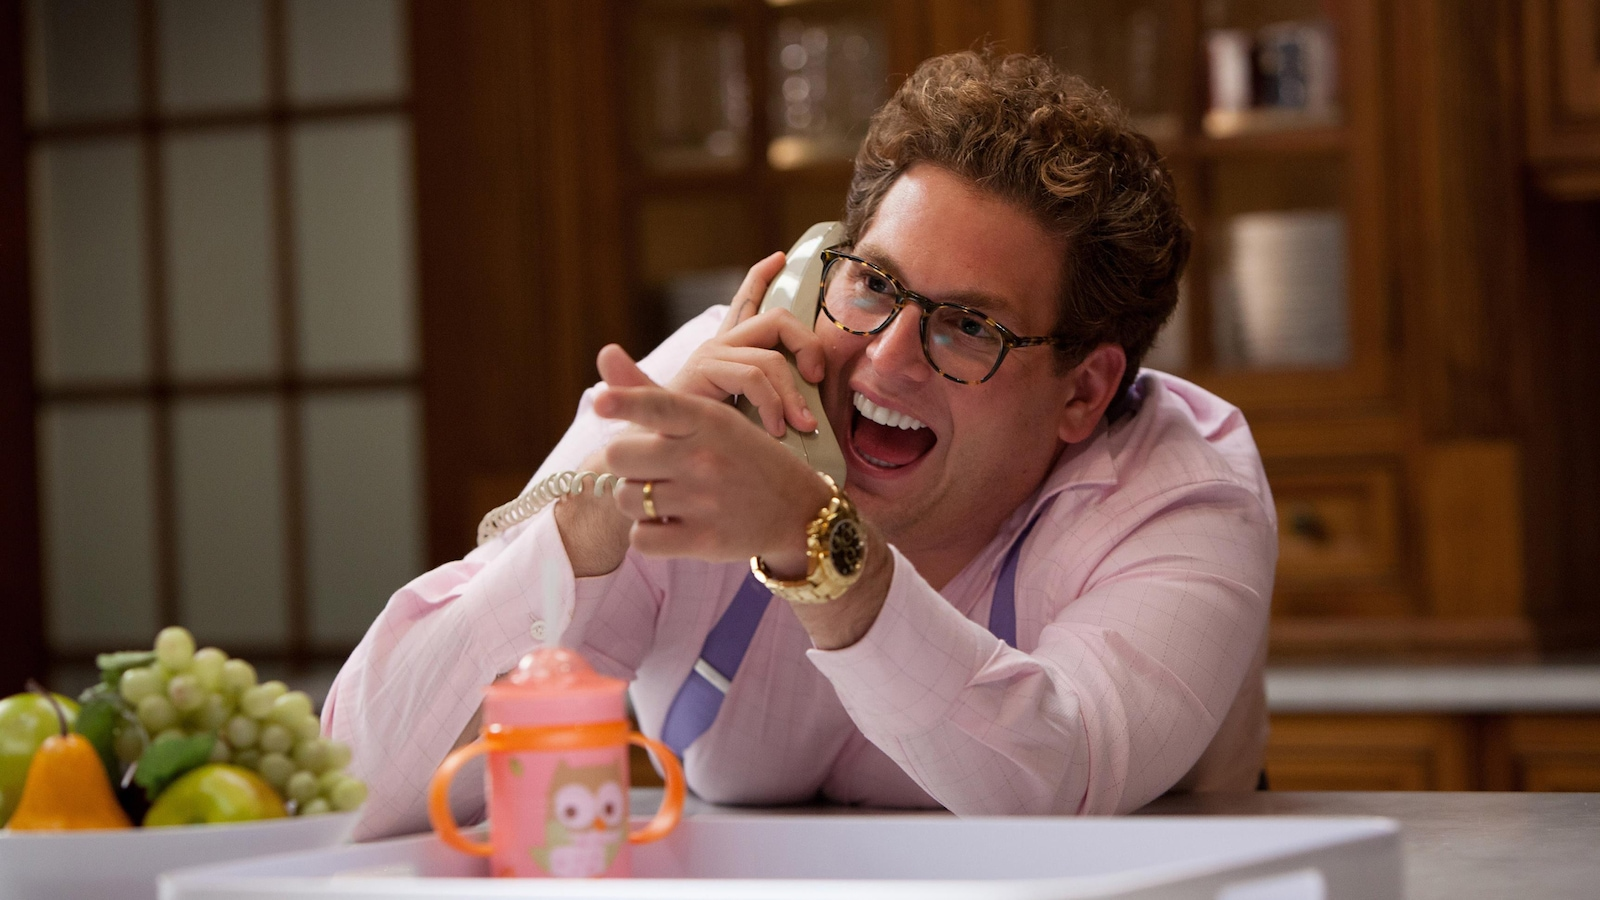 A man (Jonah Hill) wearing glasses and a gold watch laughs with his mouth open on the phone.